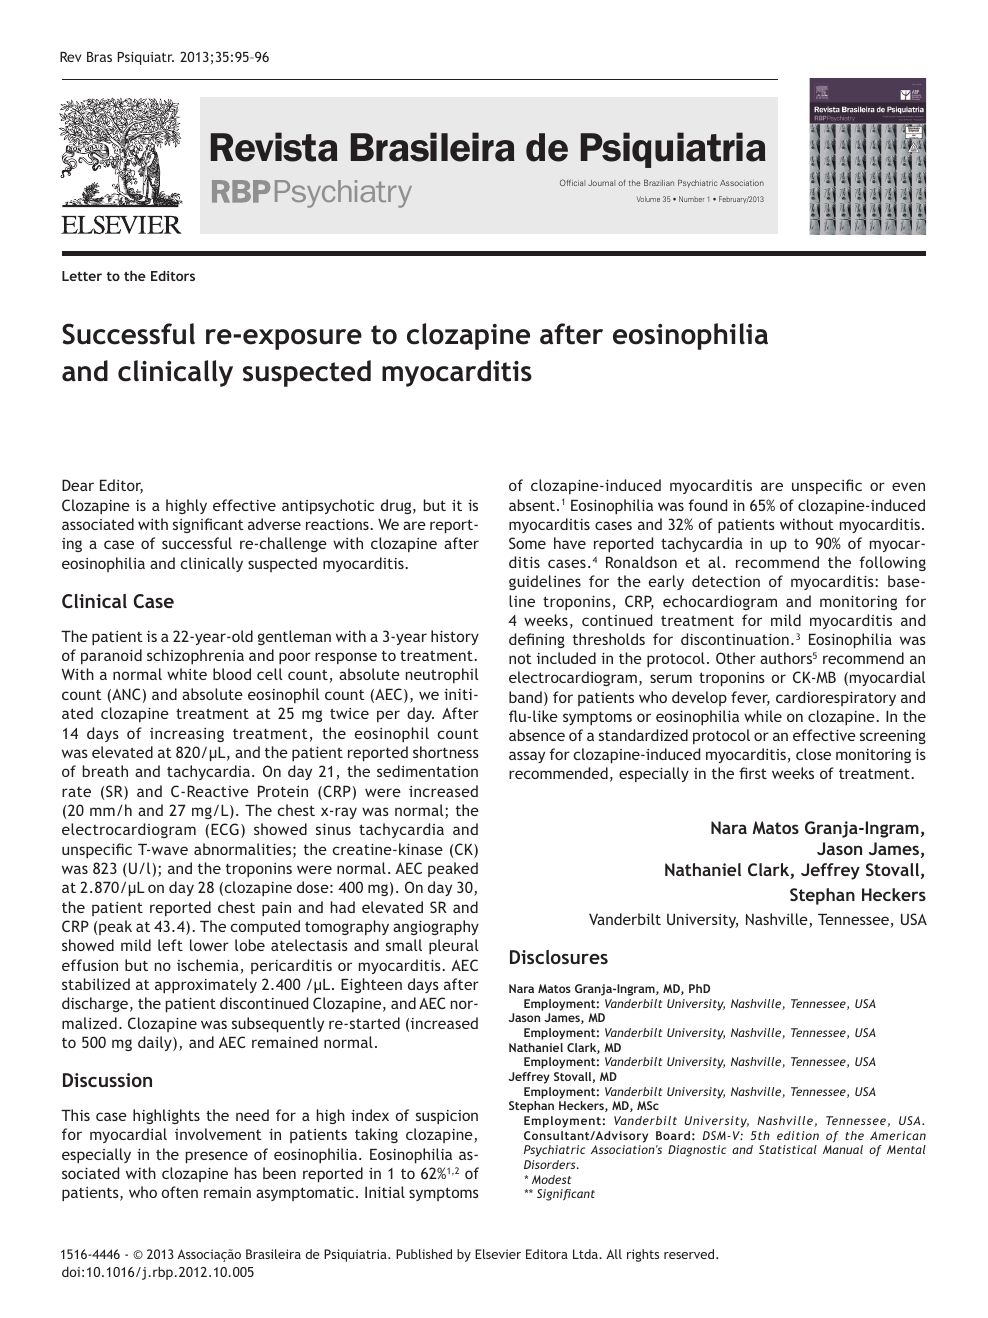 Successful Re-exposure to Clozapine after Eosinophilia and